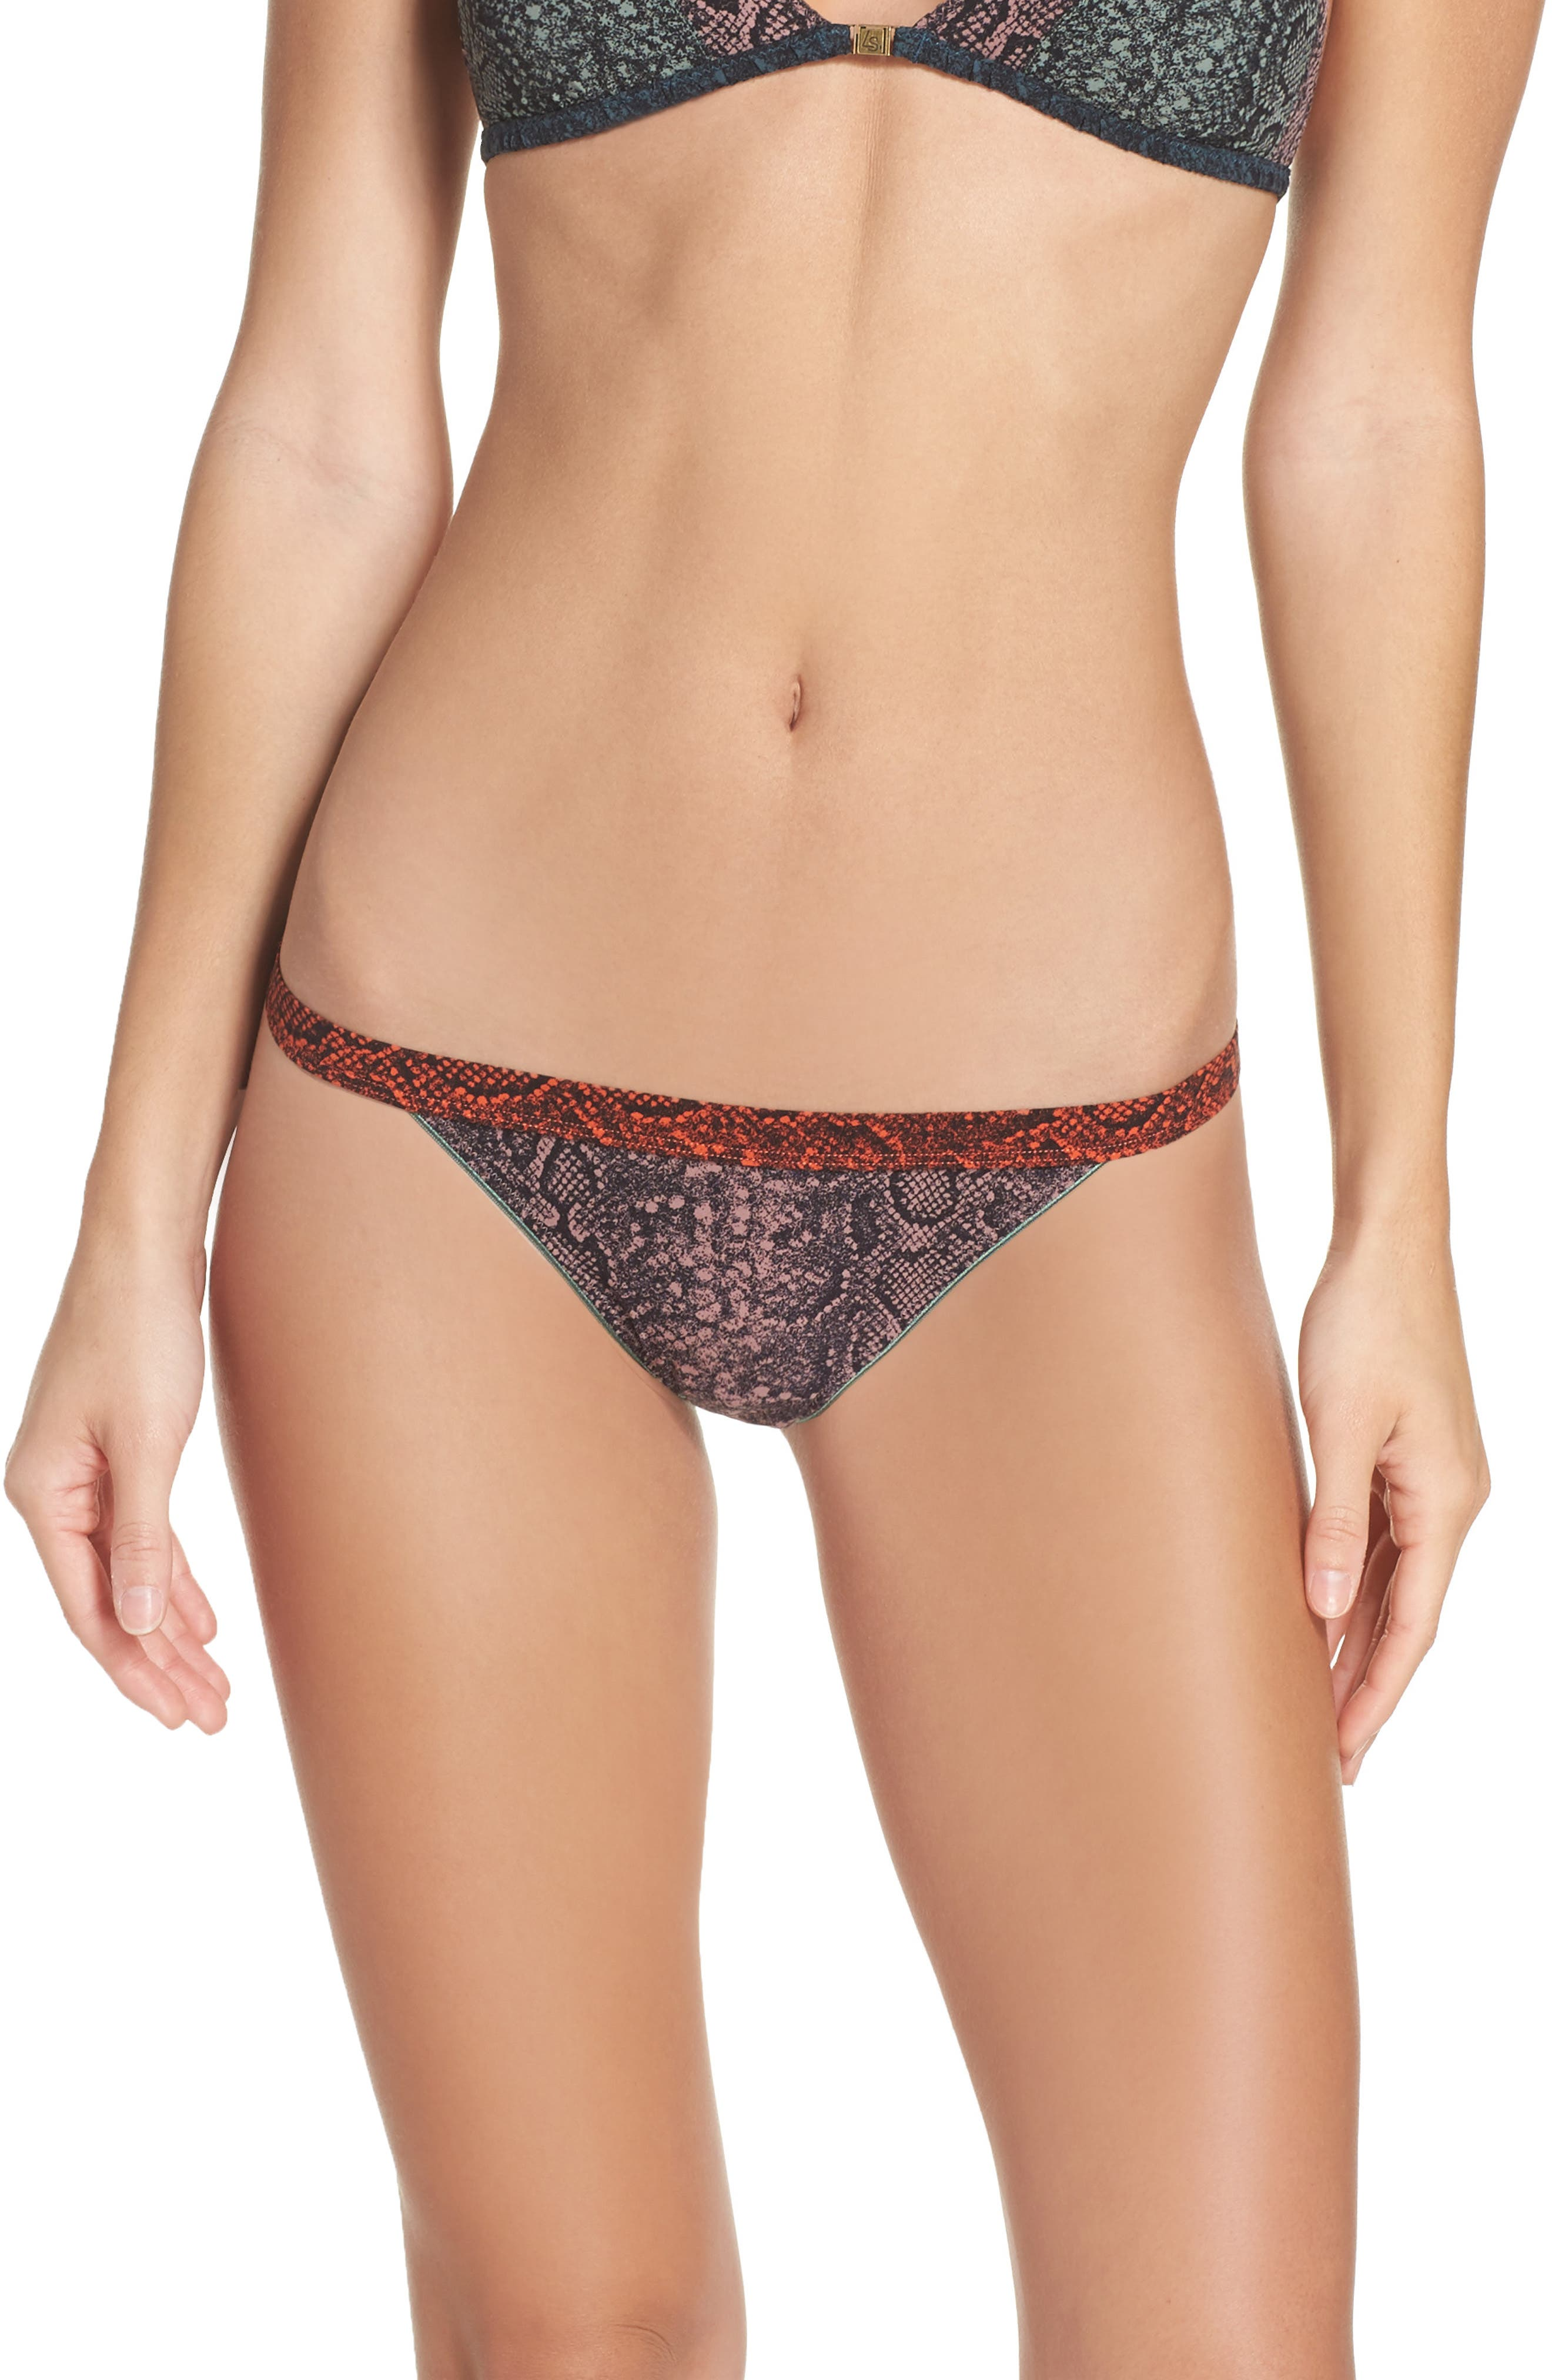 Wild Rose Lace Bikini,                         Main,                         color, Snake Grape Shake